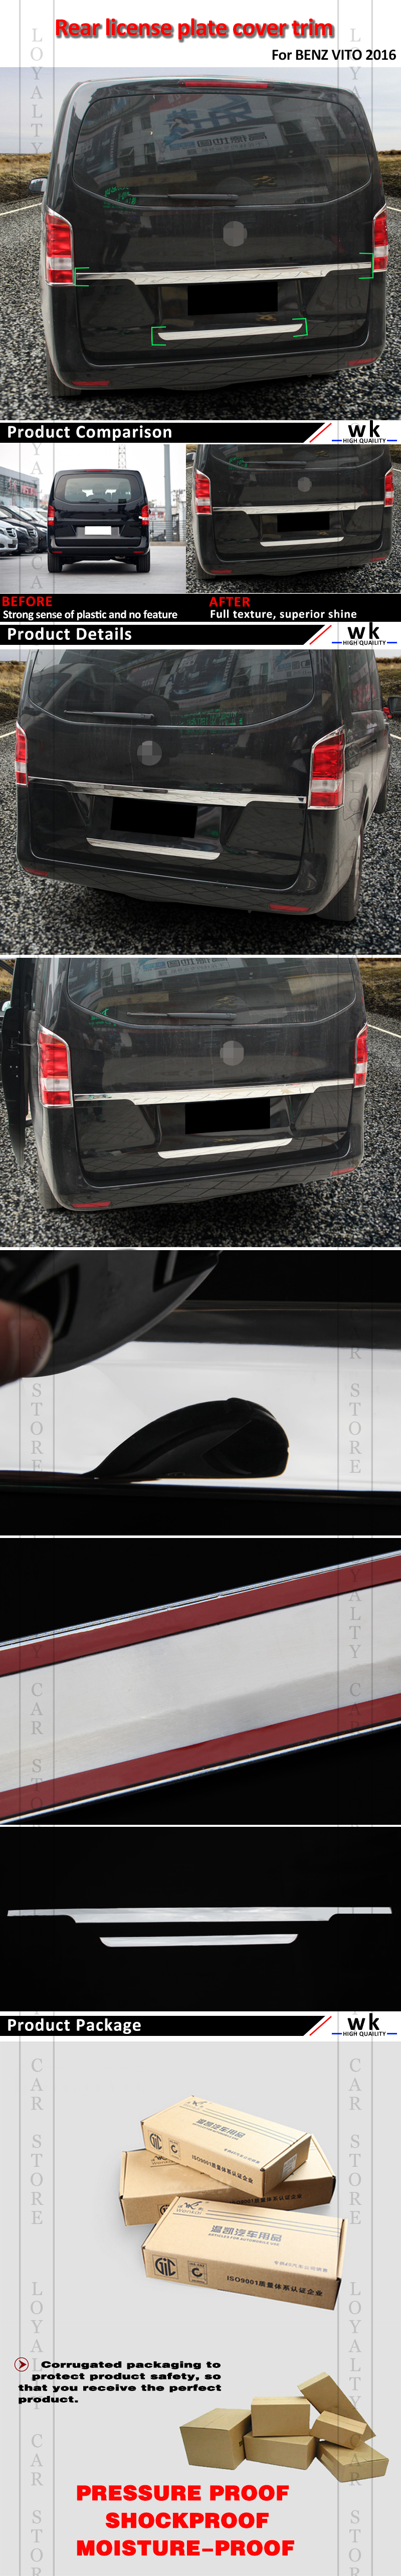 US $84 23 5% OFF Loyalty for Mercedes Benz V260 260L Vito 2016 2017 2018  ABS Rear License Plate Trunk Cover Trim Auto Styling-in Car Stickers from